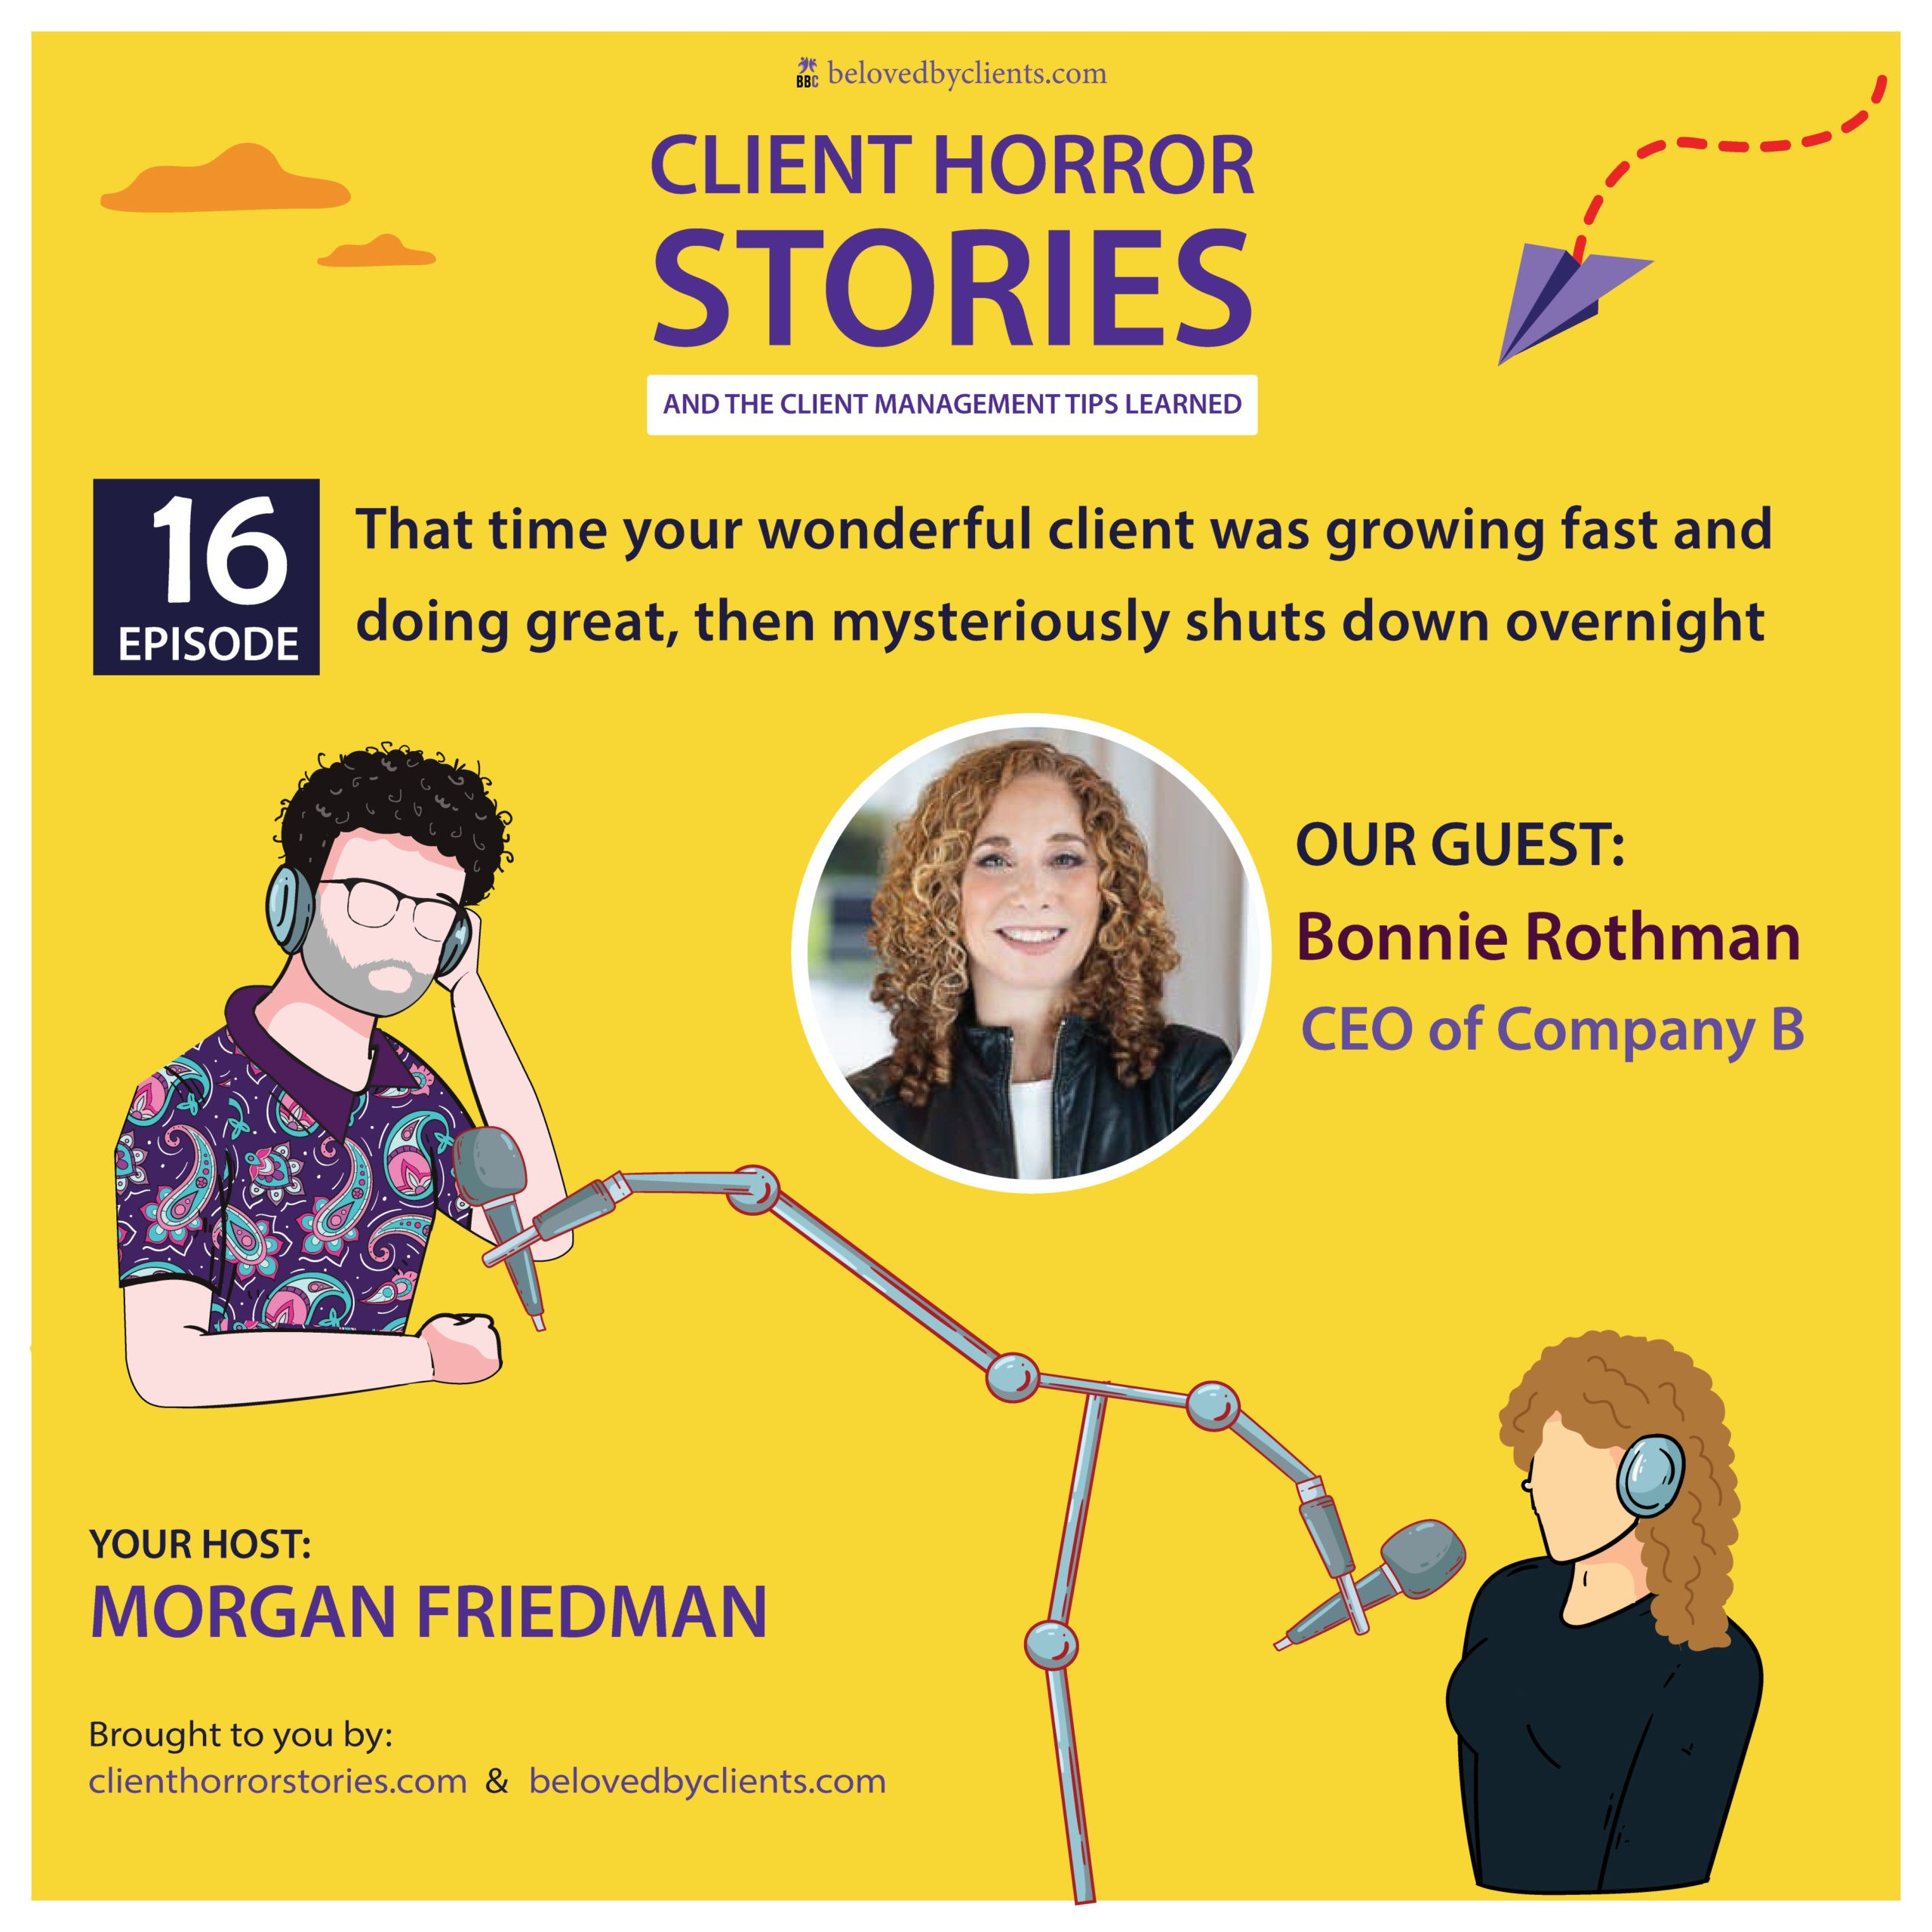 That time your wonderful client was growing fast and doing great, then mysteriously shuts down overnight (with Bonnie Rothman)